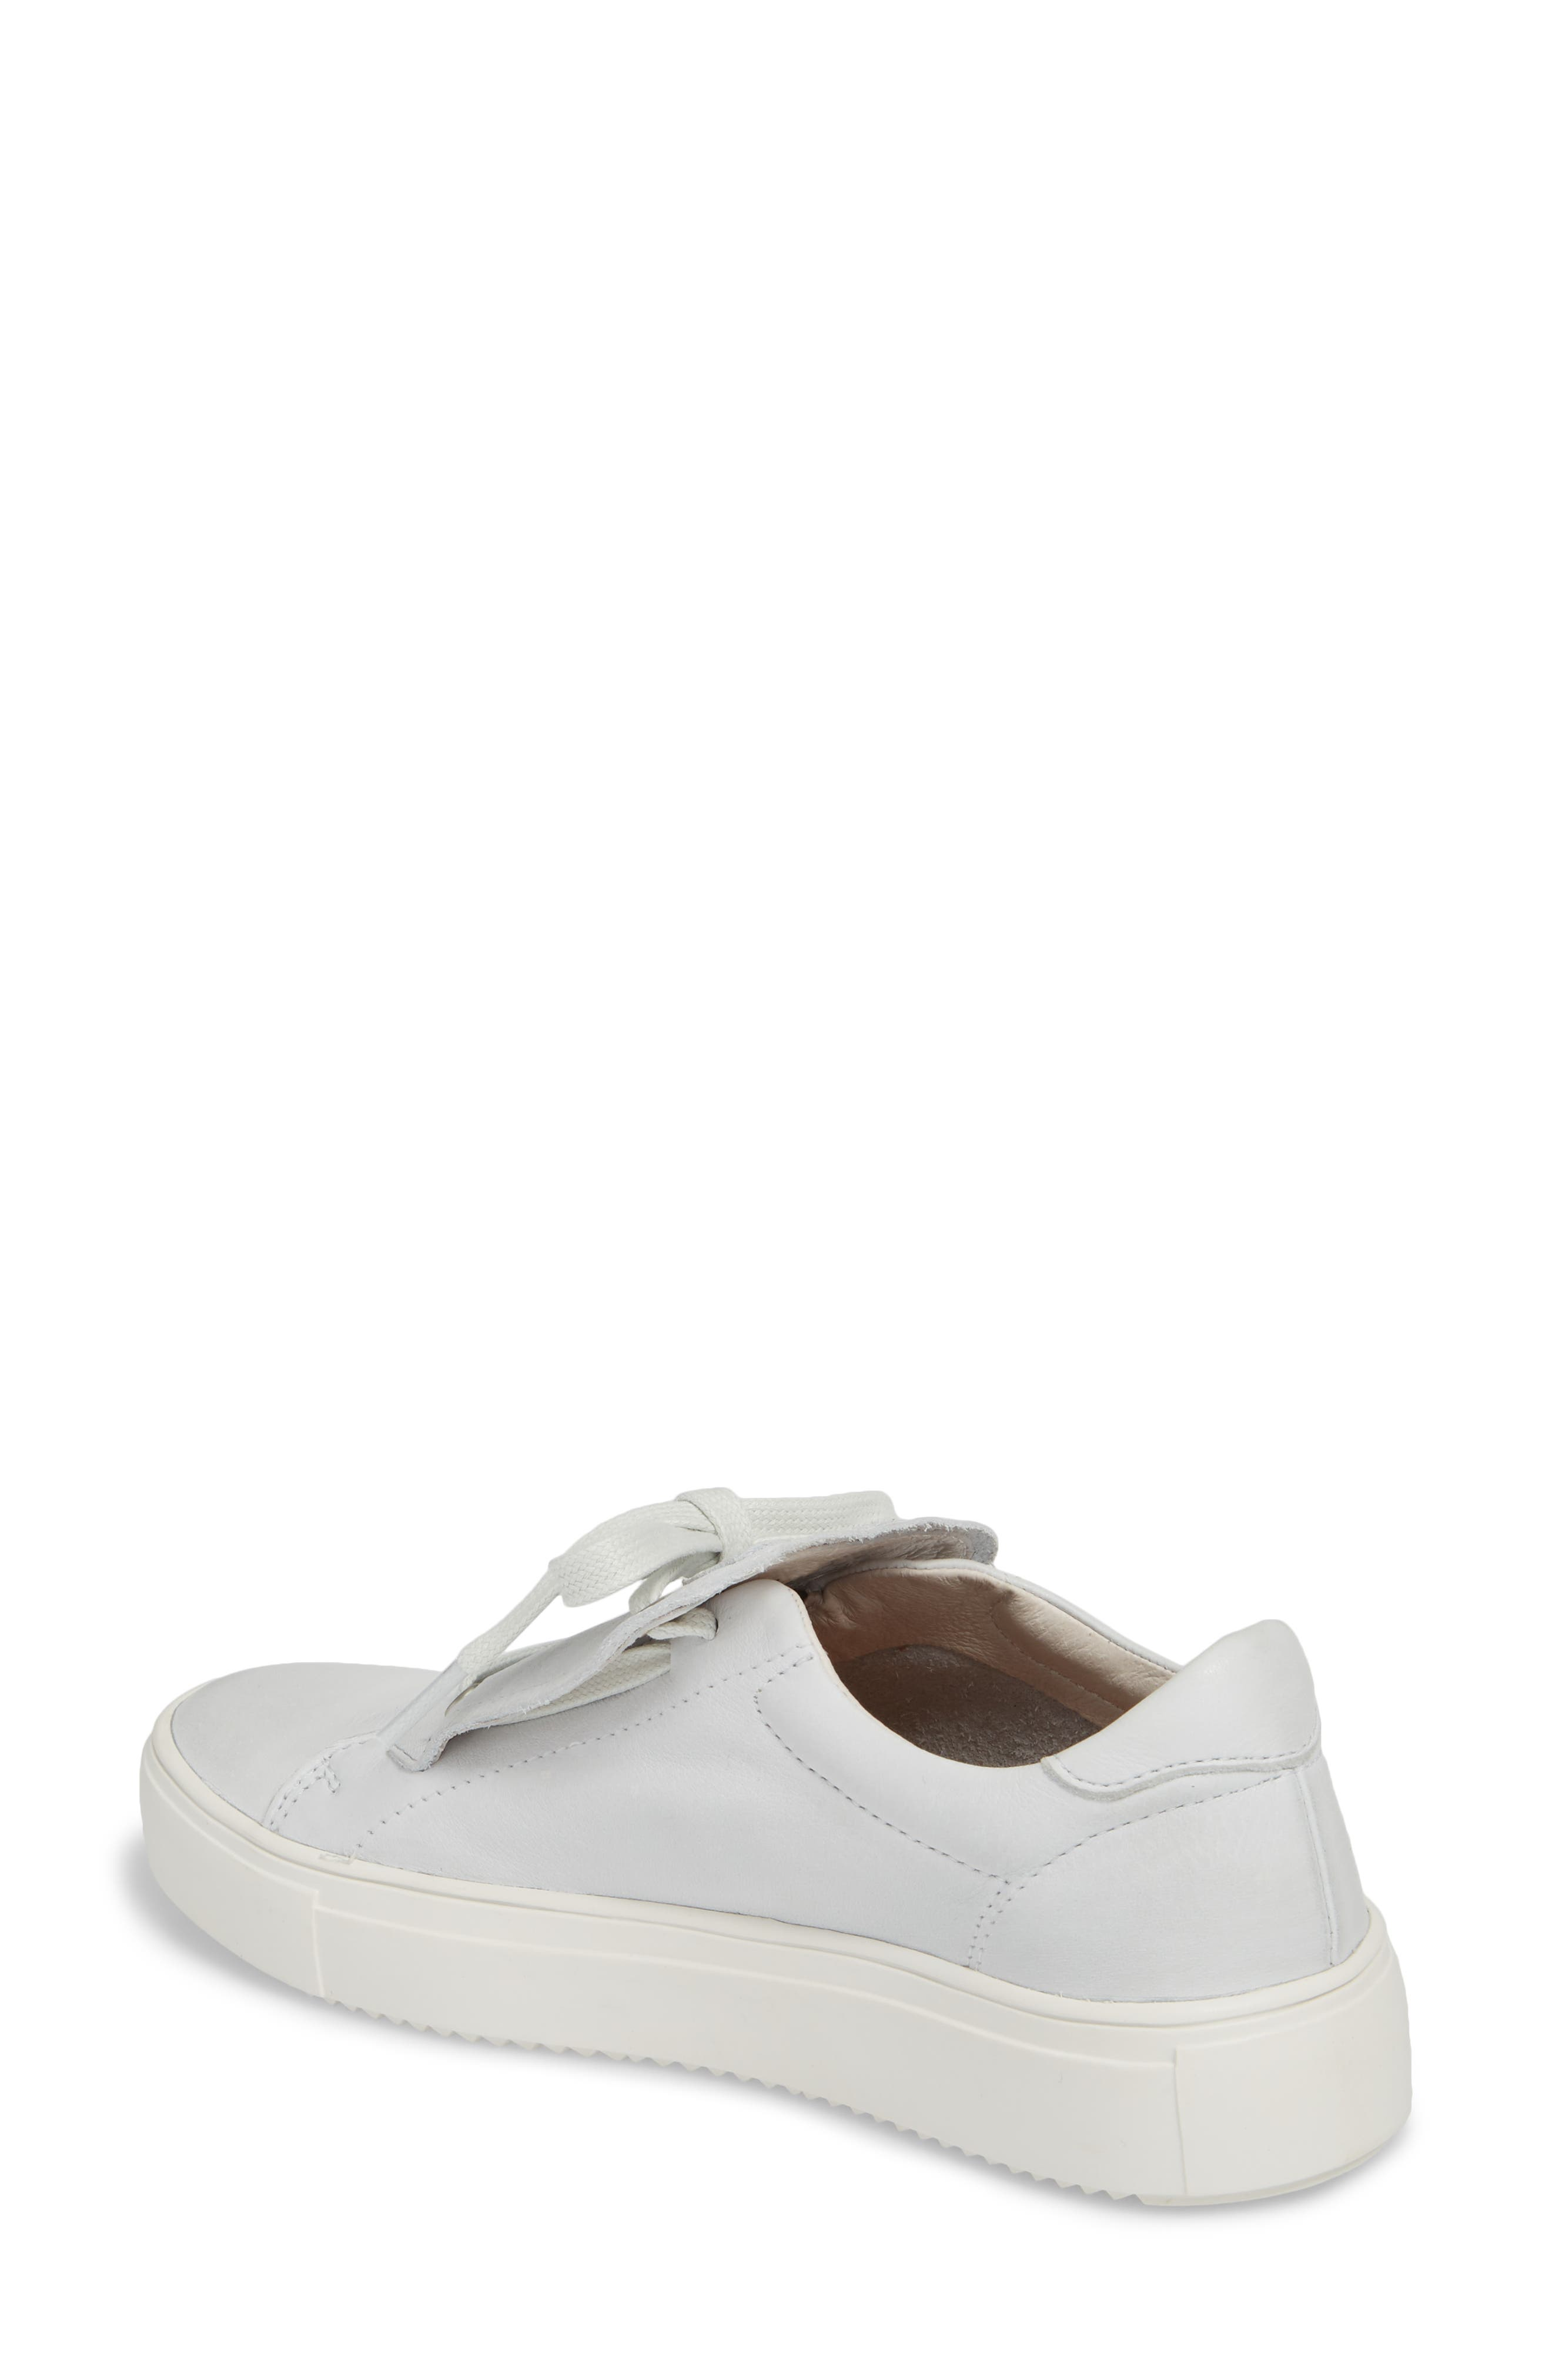 PL72 External Tongue Sneaker,                             Alternate thumbnail 2, color,                             White Leather